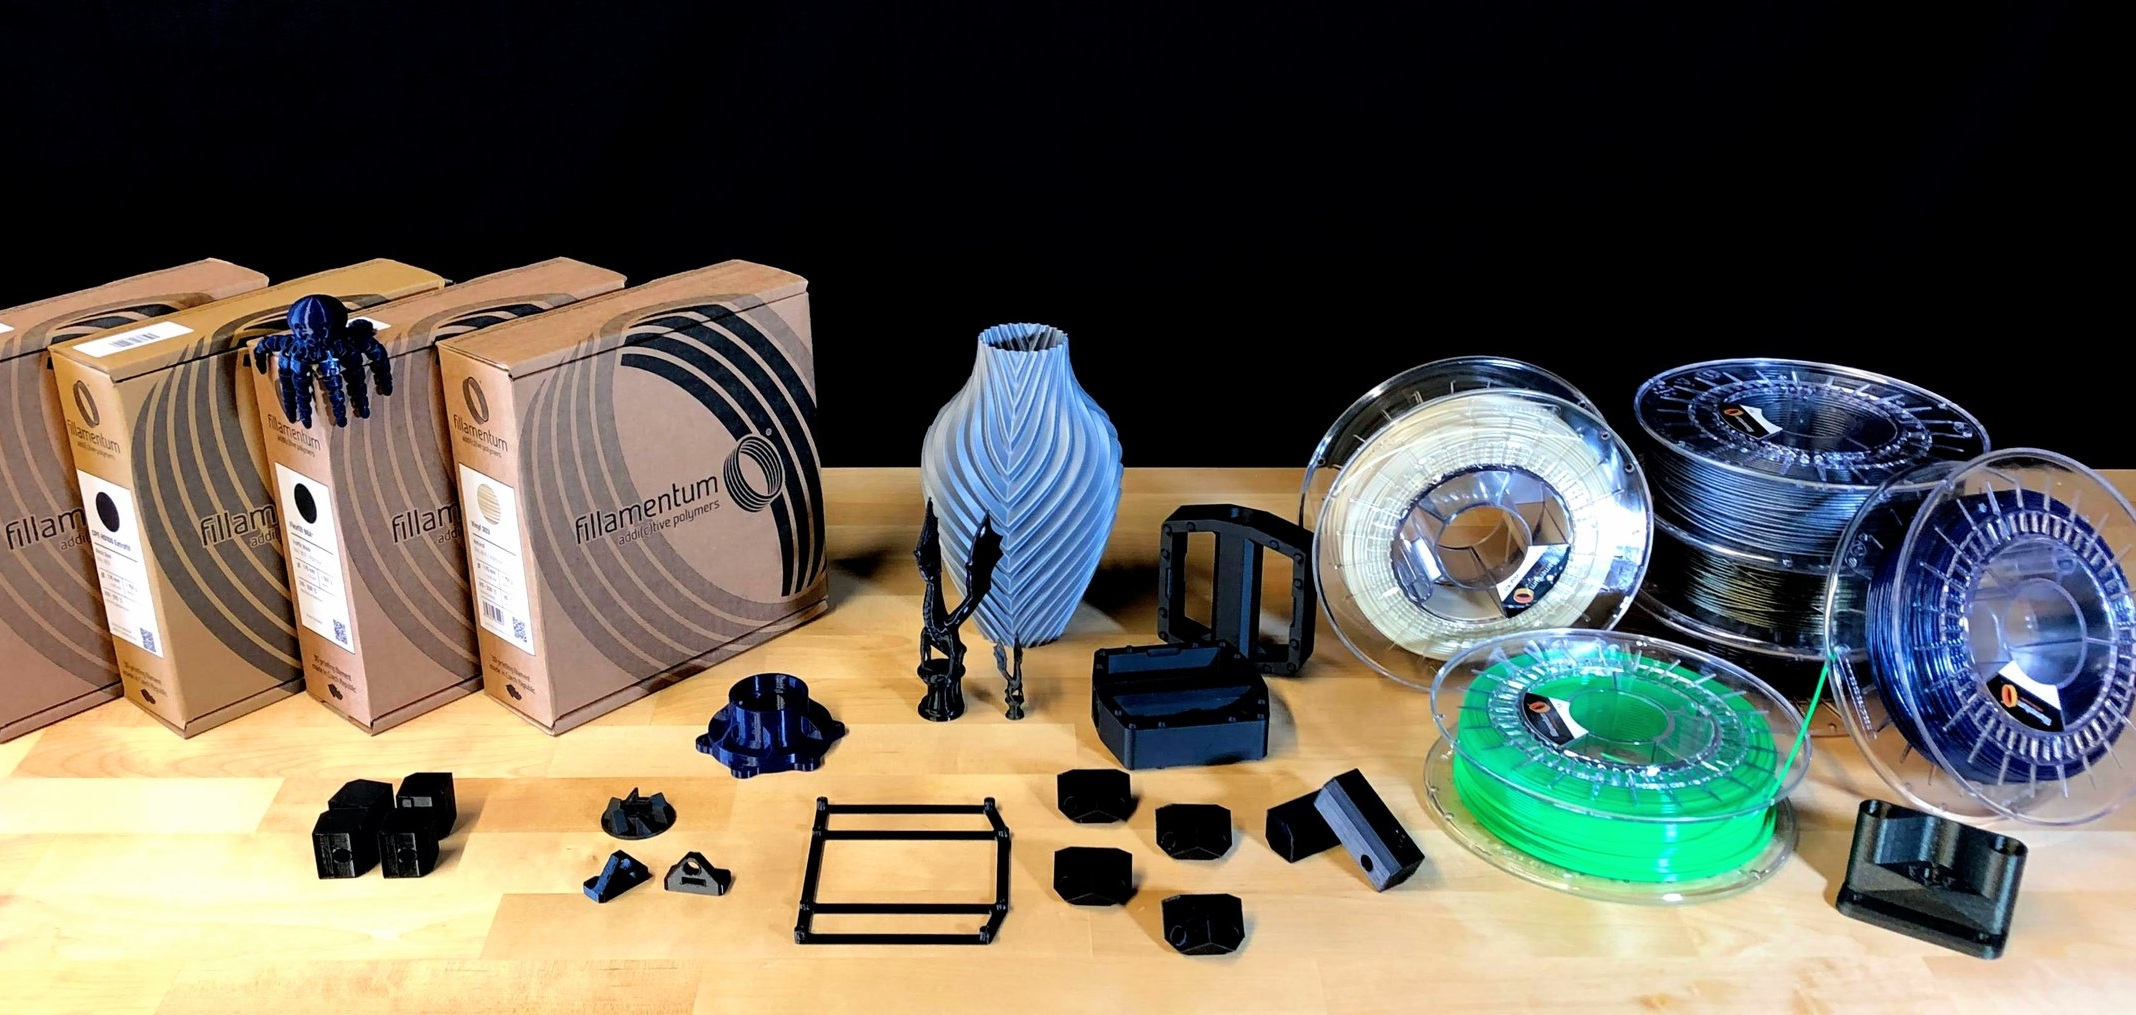 Materials by Fillamentum - Offering a wide range of high-quality 1.75mm 3D printing materials for every application